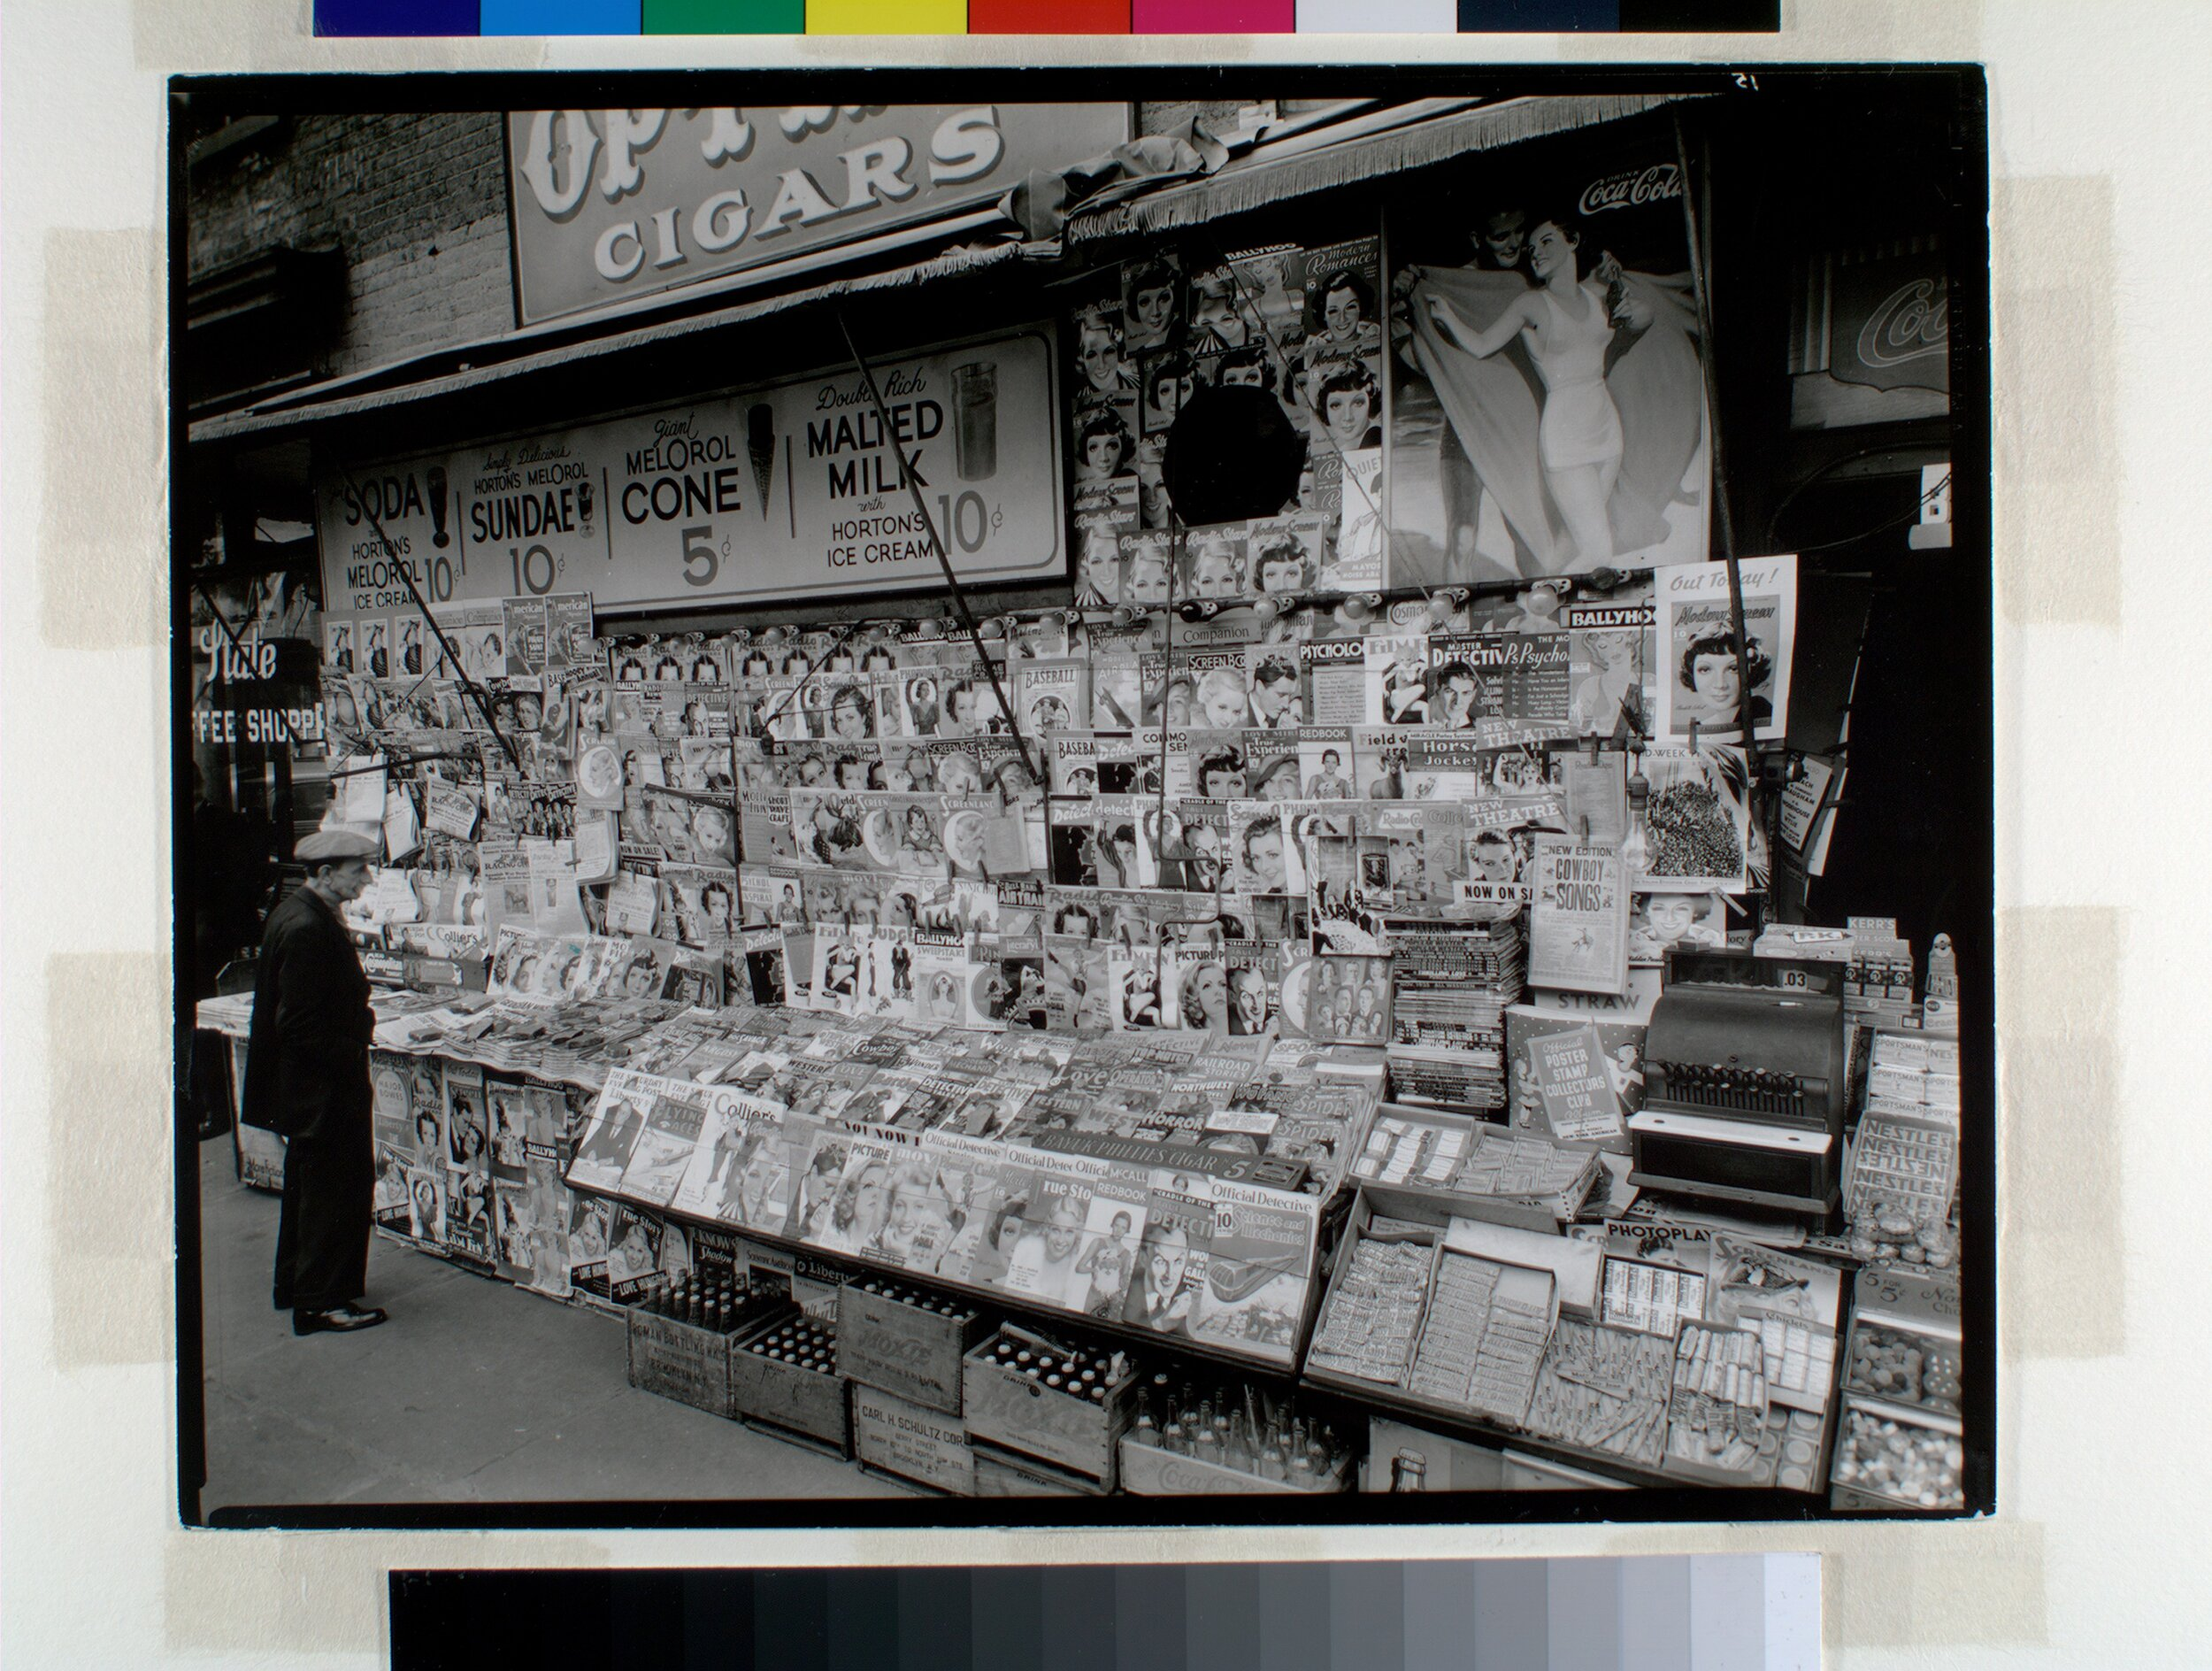 NEWS-STANDS IN THE 1930S